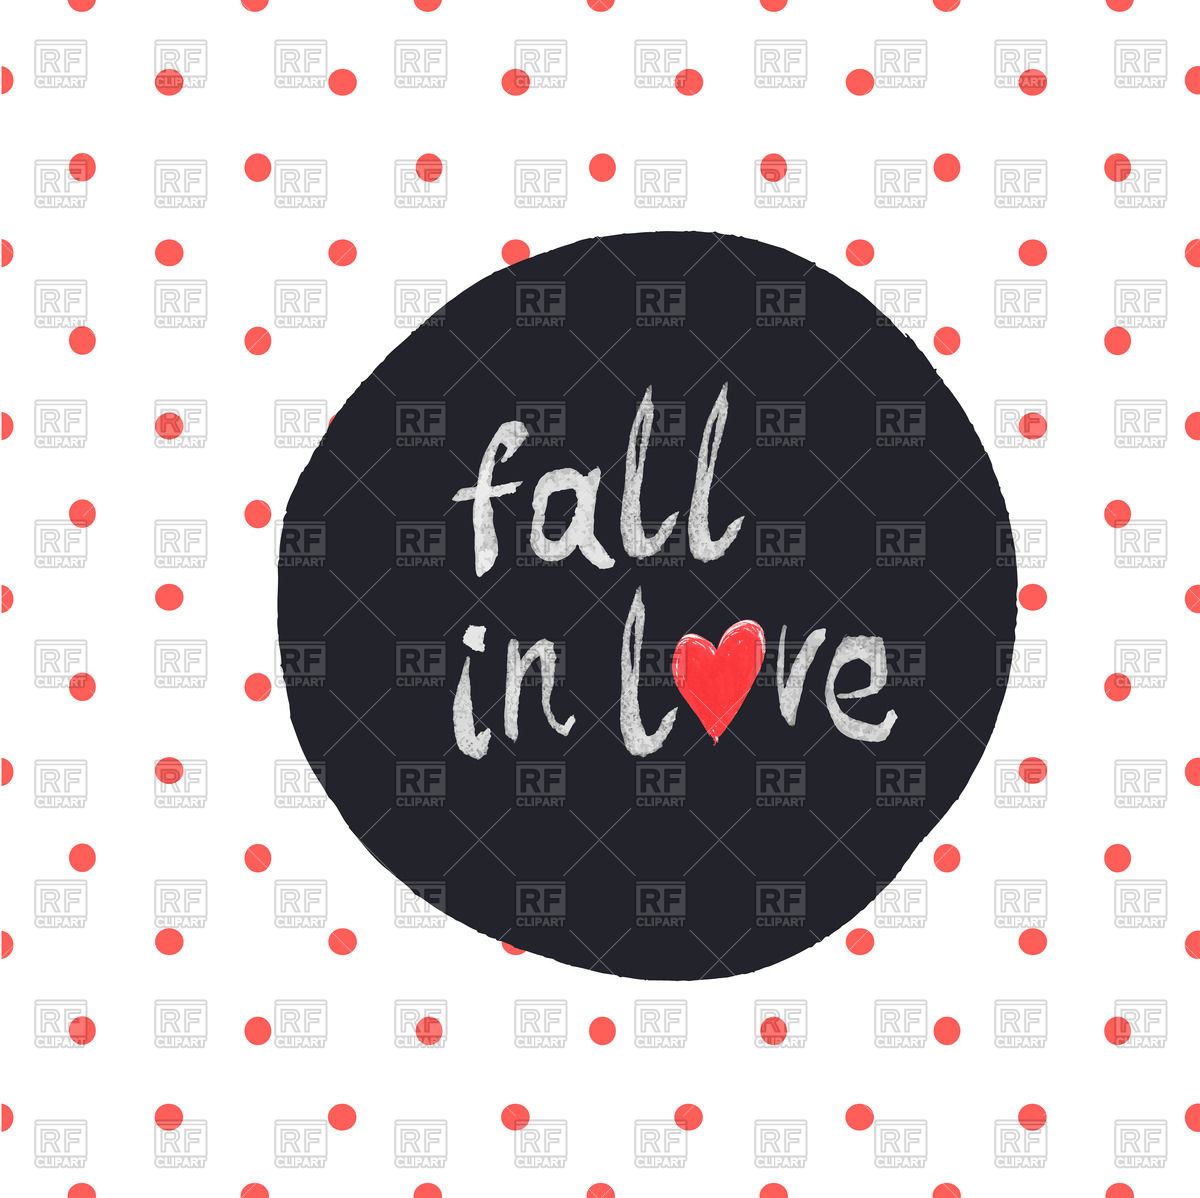 Falling in love clipart hearts freeuse Falling in love clipart hearts - ClipartFest freeuse